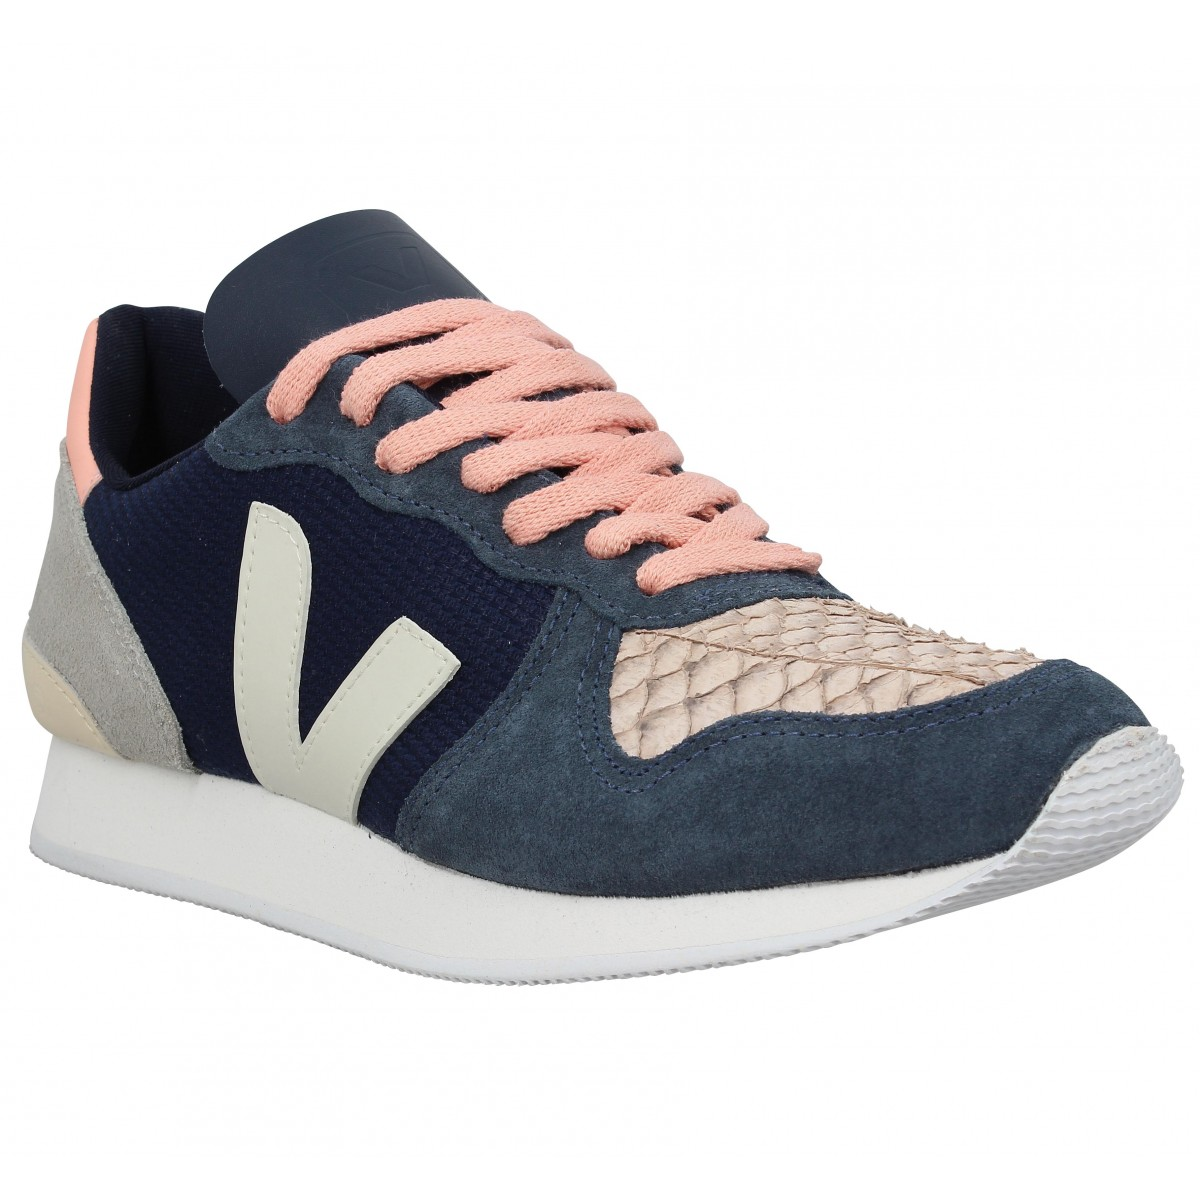 Baskets VEJA Holiday Low Top mesh Femme Navy